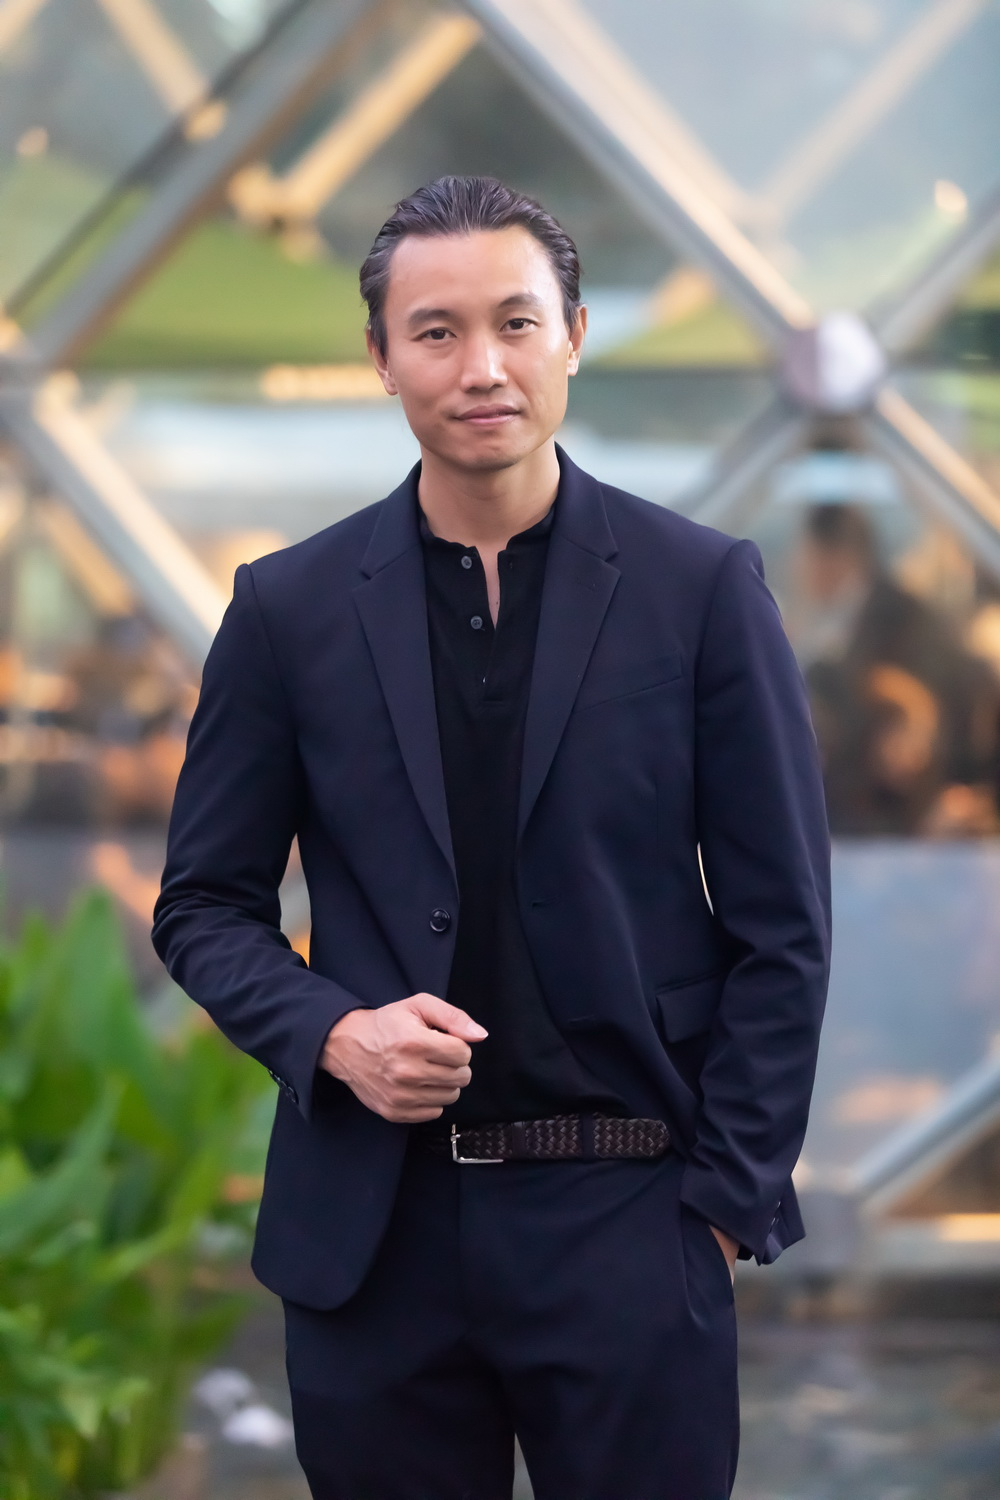 Kueng-Chalermchai Mahagitsiri, CEO 411 Entertainment (PB4_1798)